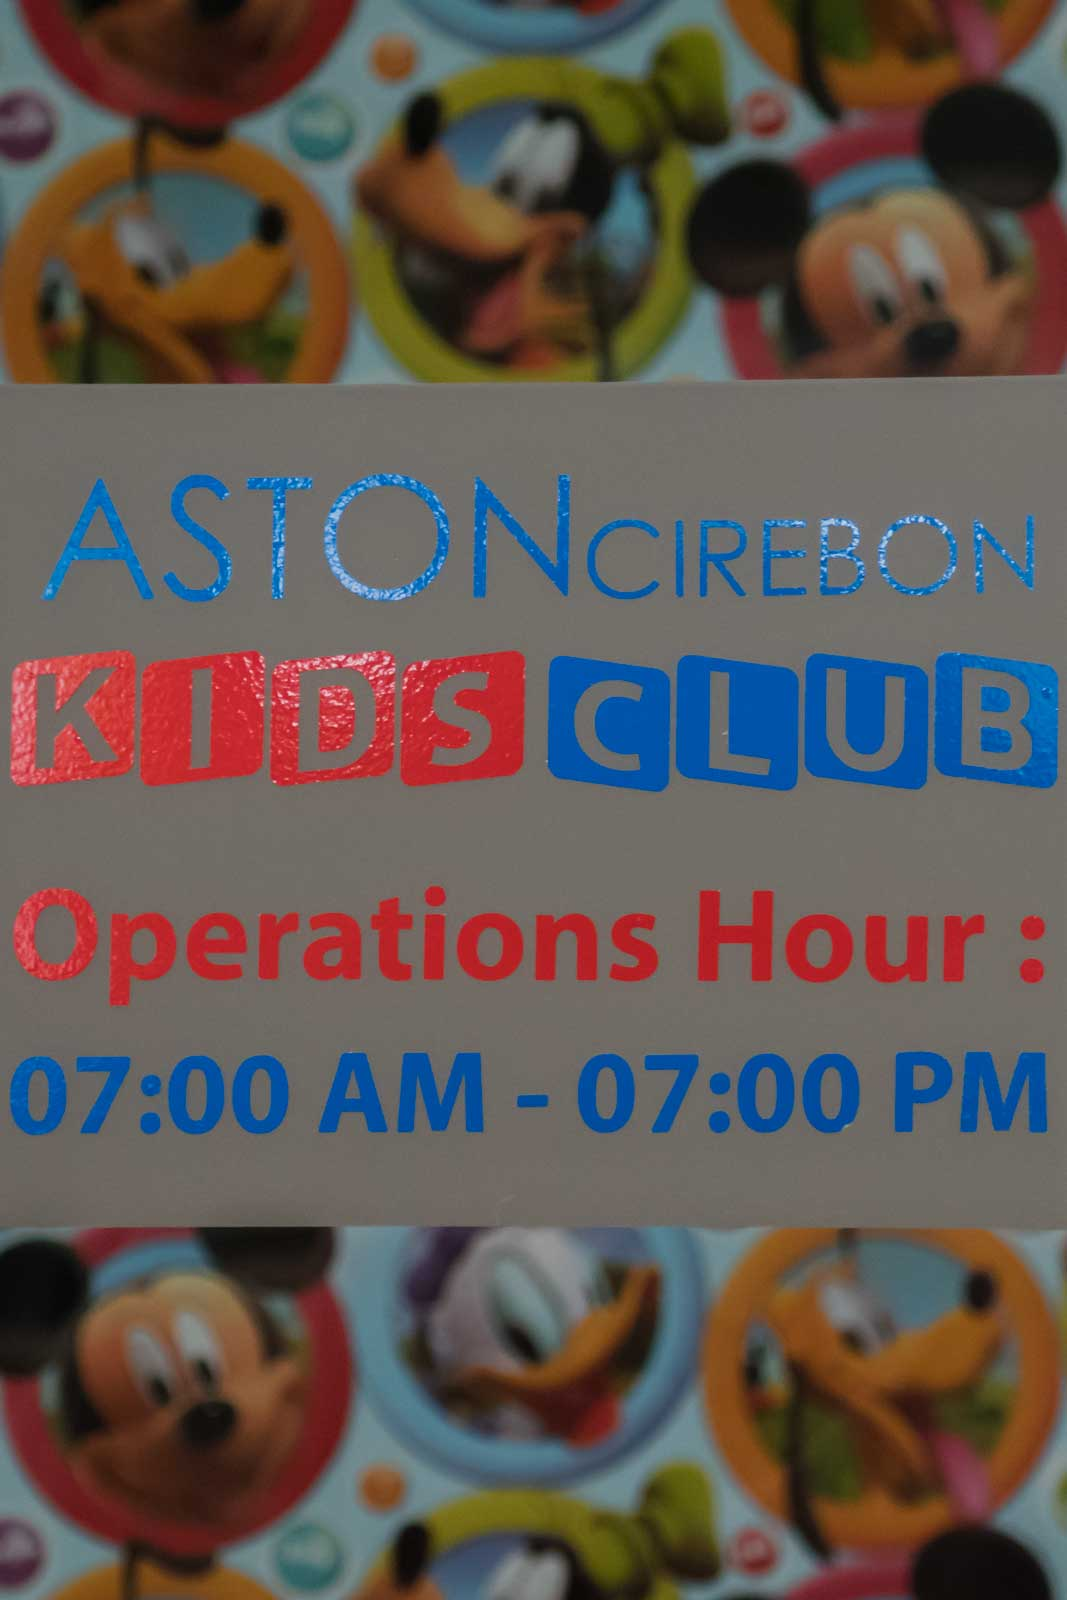 Aston Cirebon Kids Club